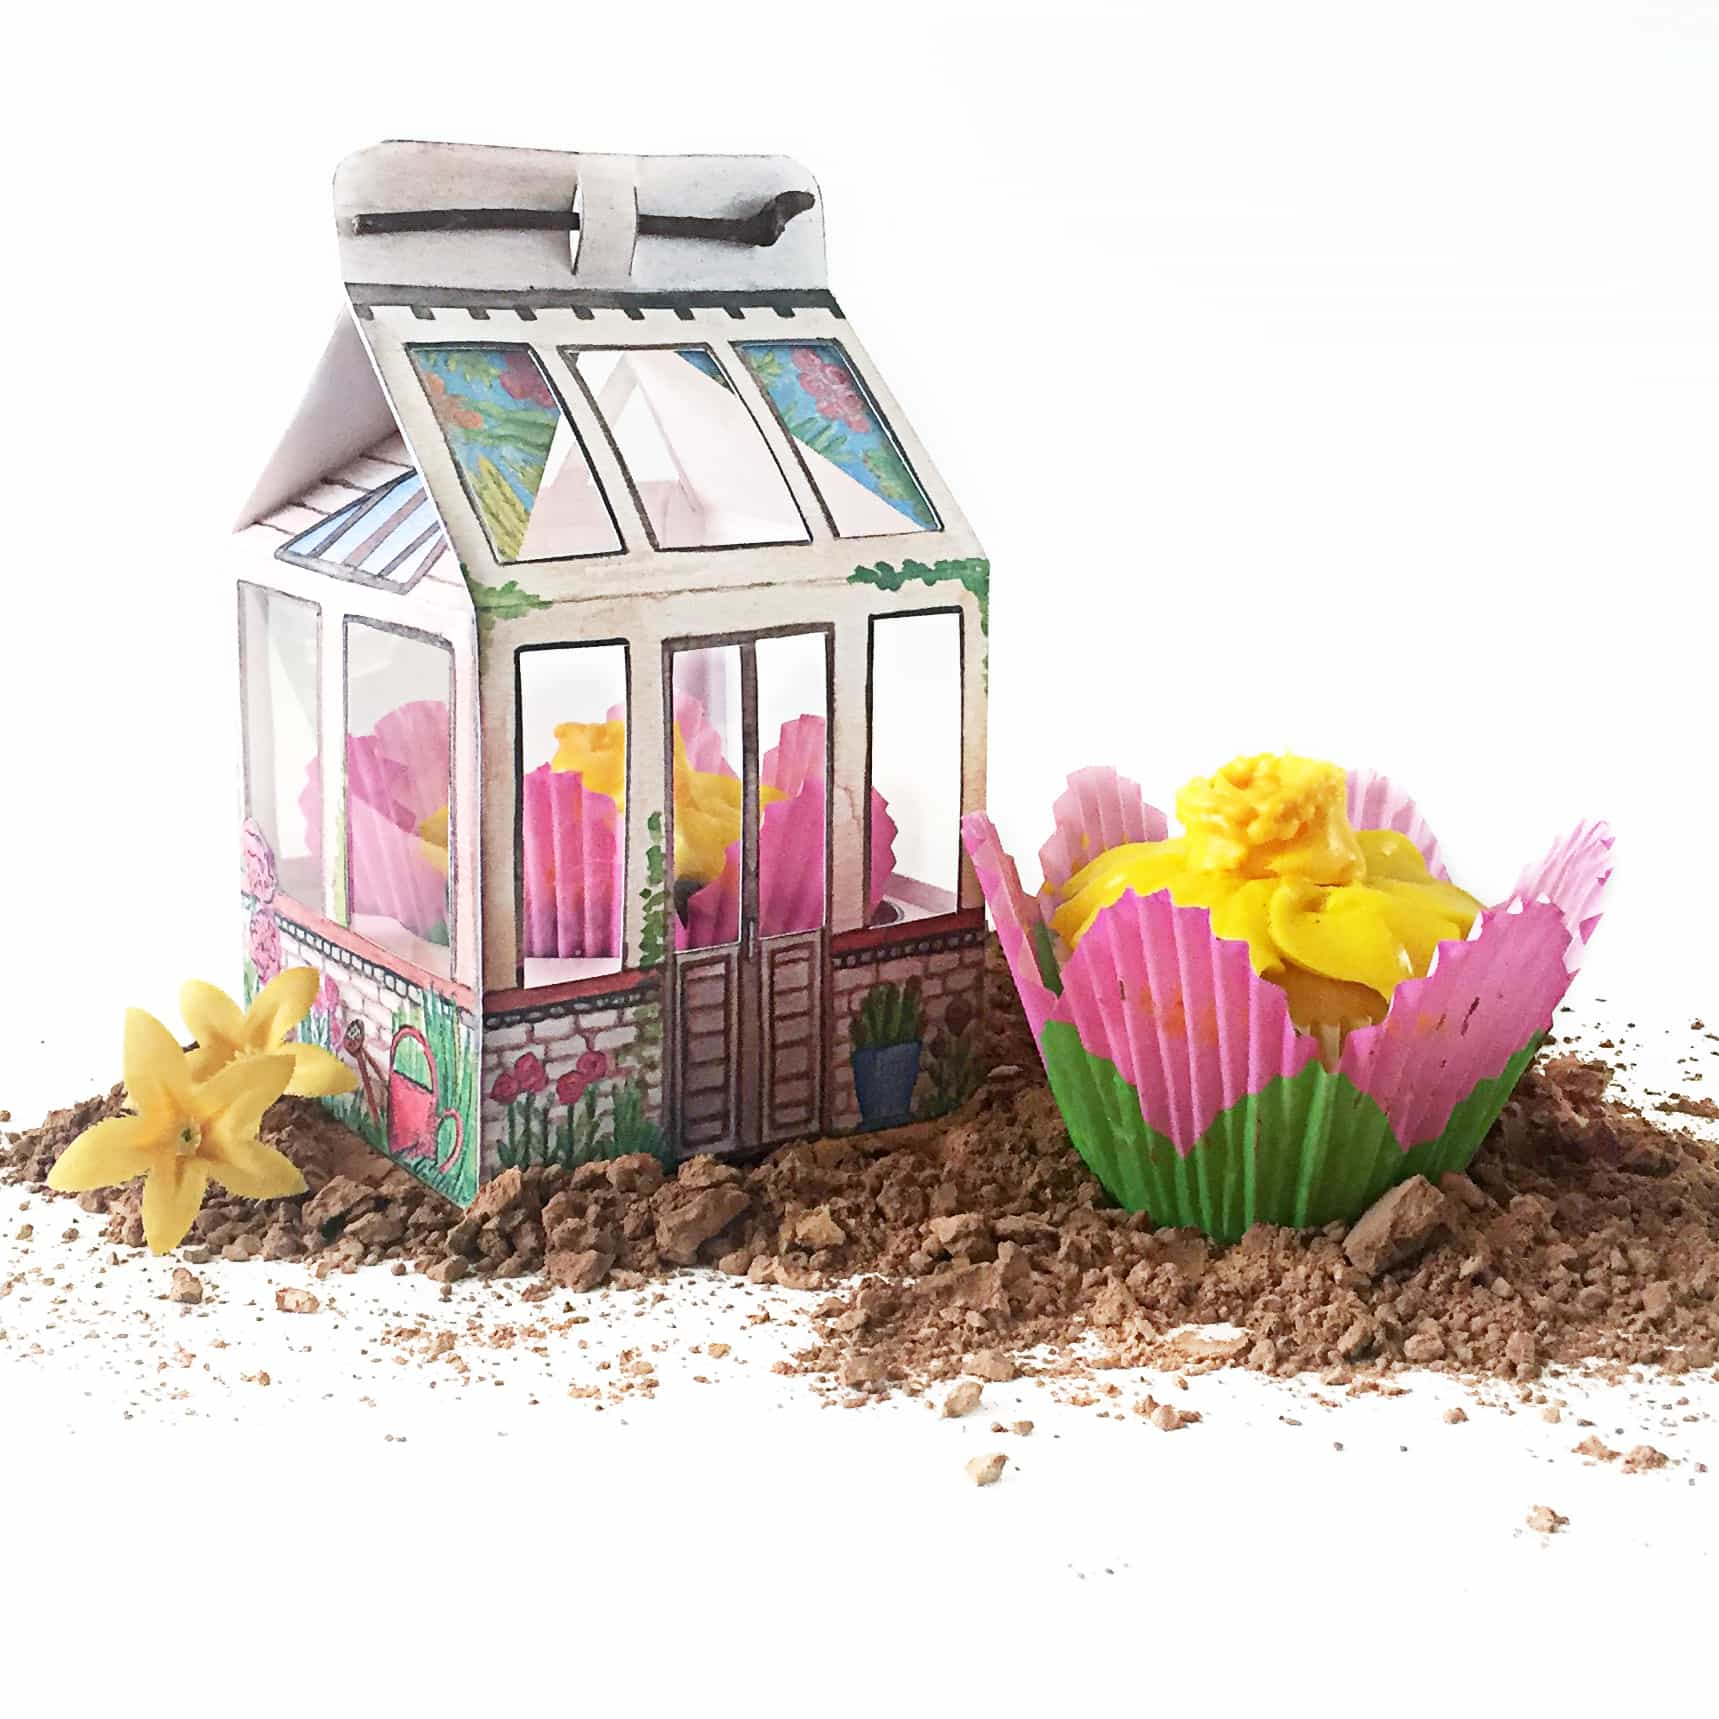 Greenhouse Gift Box with flower cupcake sitting in dirt.